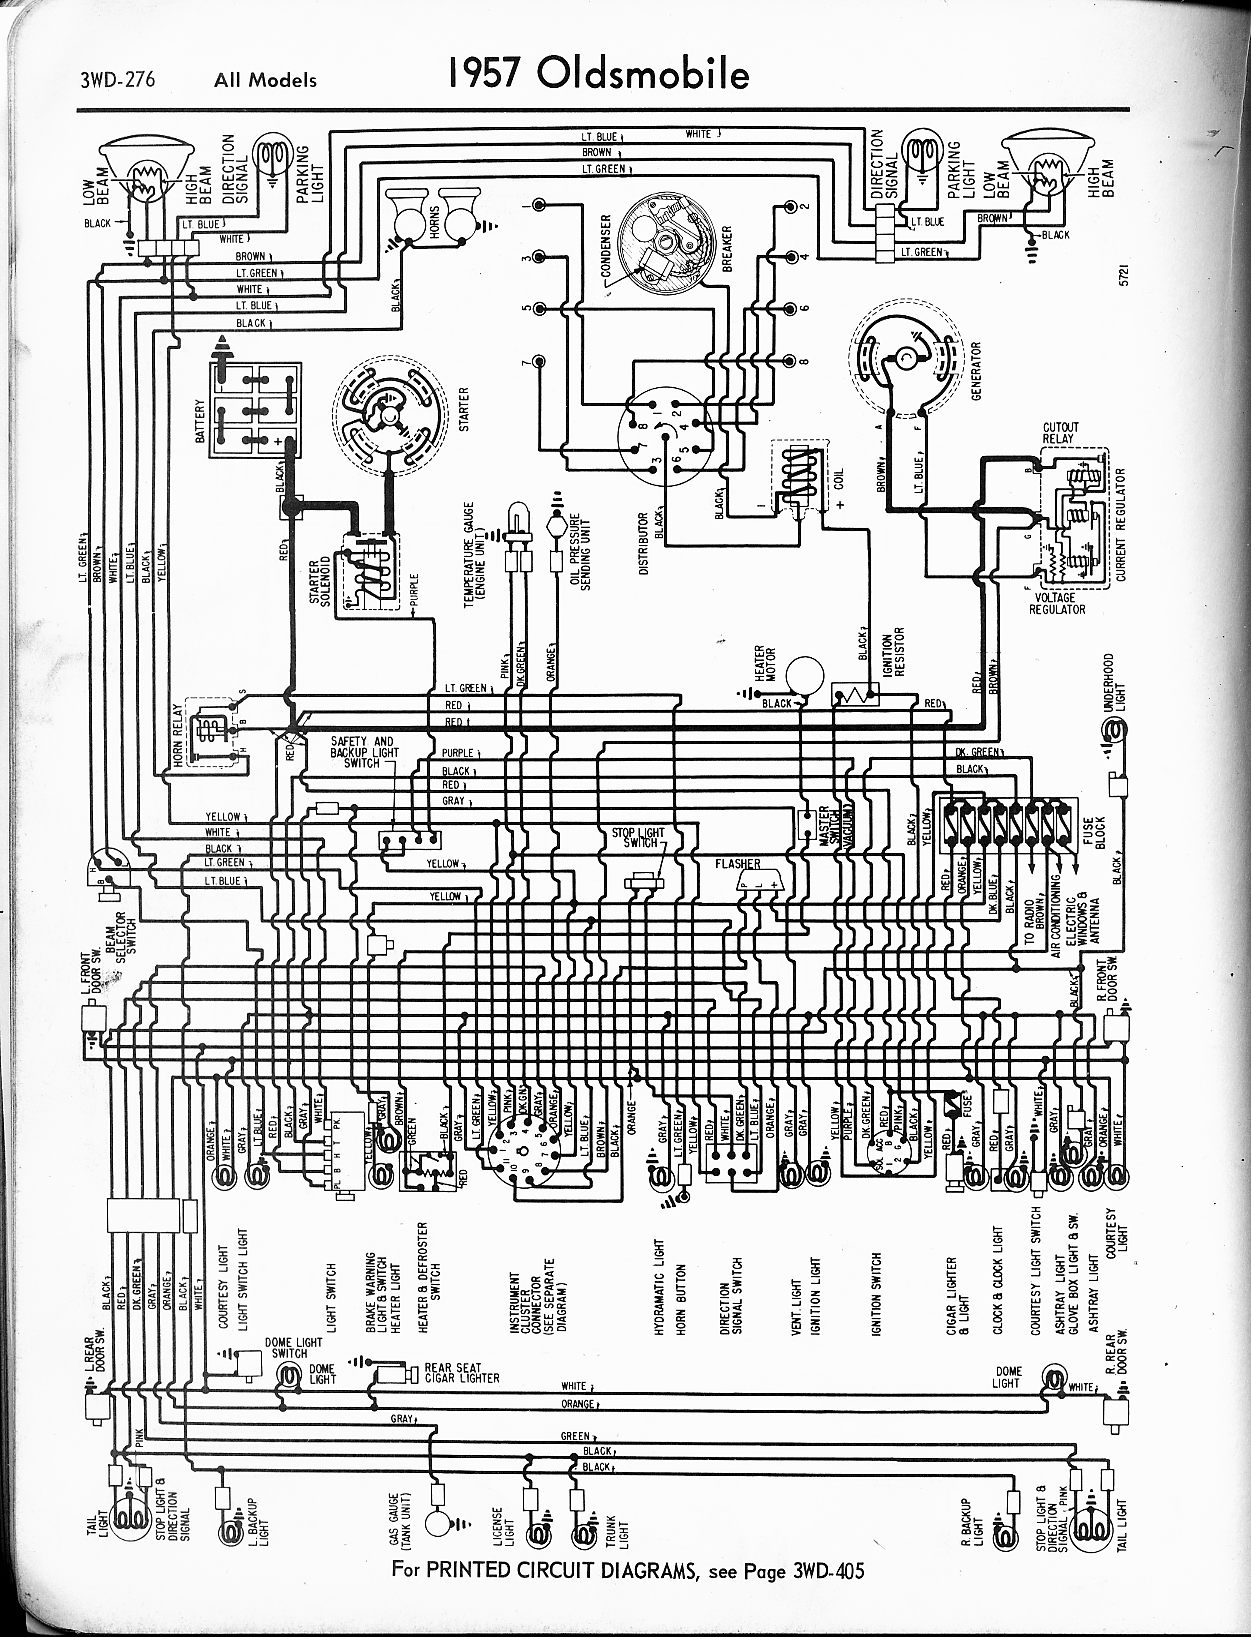 Oldsmobile wiring diagrams the old car manual project oldsmobile wiring diagrams swarovskicordoba Gallery